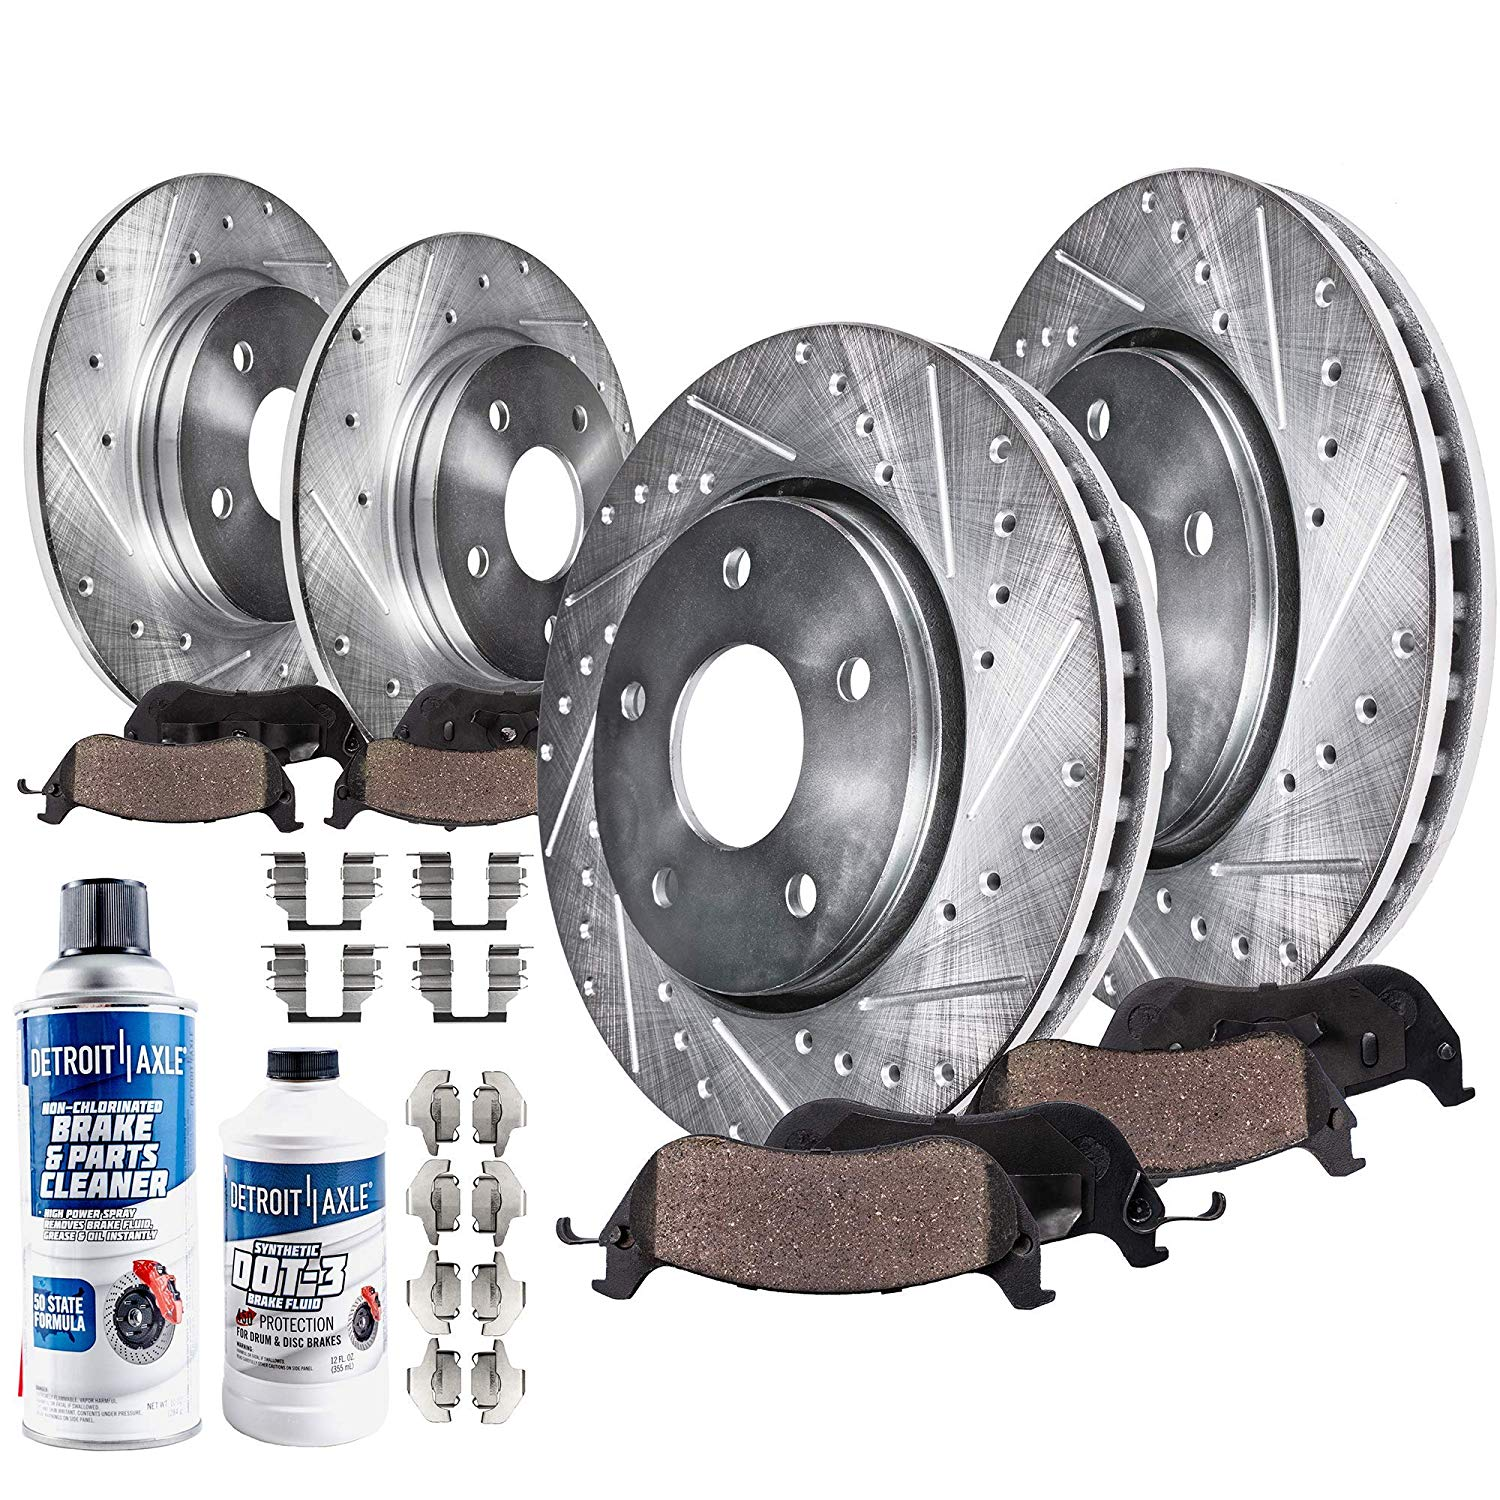 296mm Front 279mm Rear Brake Rotors And Pads Kit For 2 4l 2009 2010 Pontiac Vibe 2009 2013 Toyota Matrix Drilled And Slotted